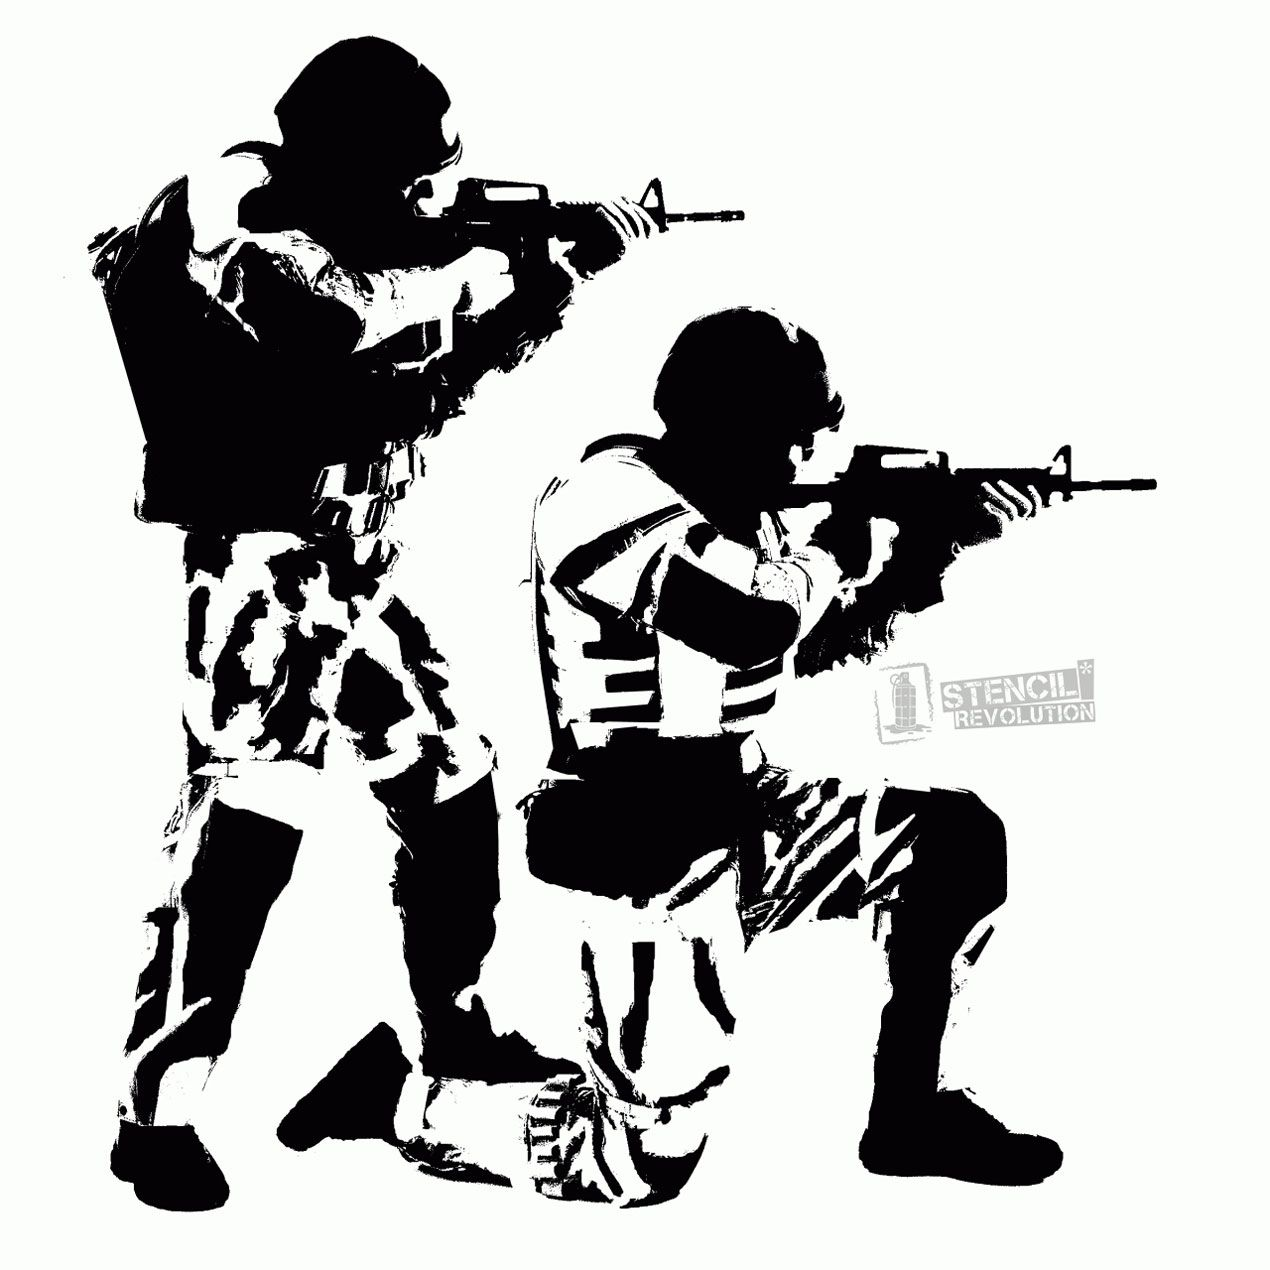 Soldier Army WAR AIRRUSH Painting Wall Stencil 2